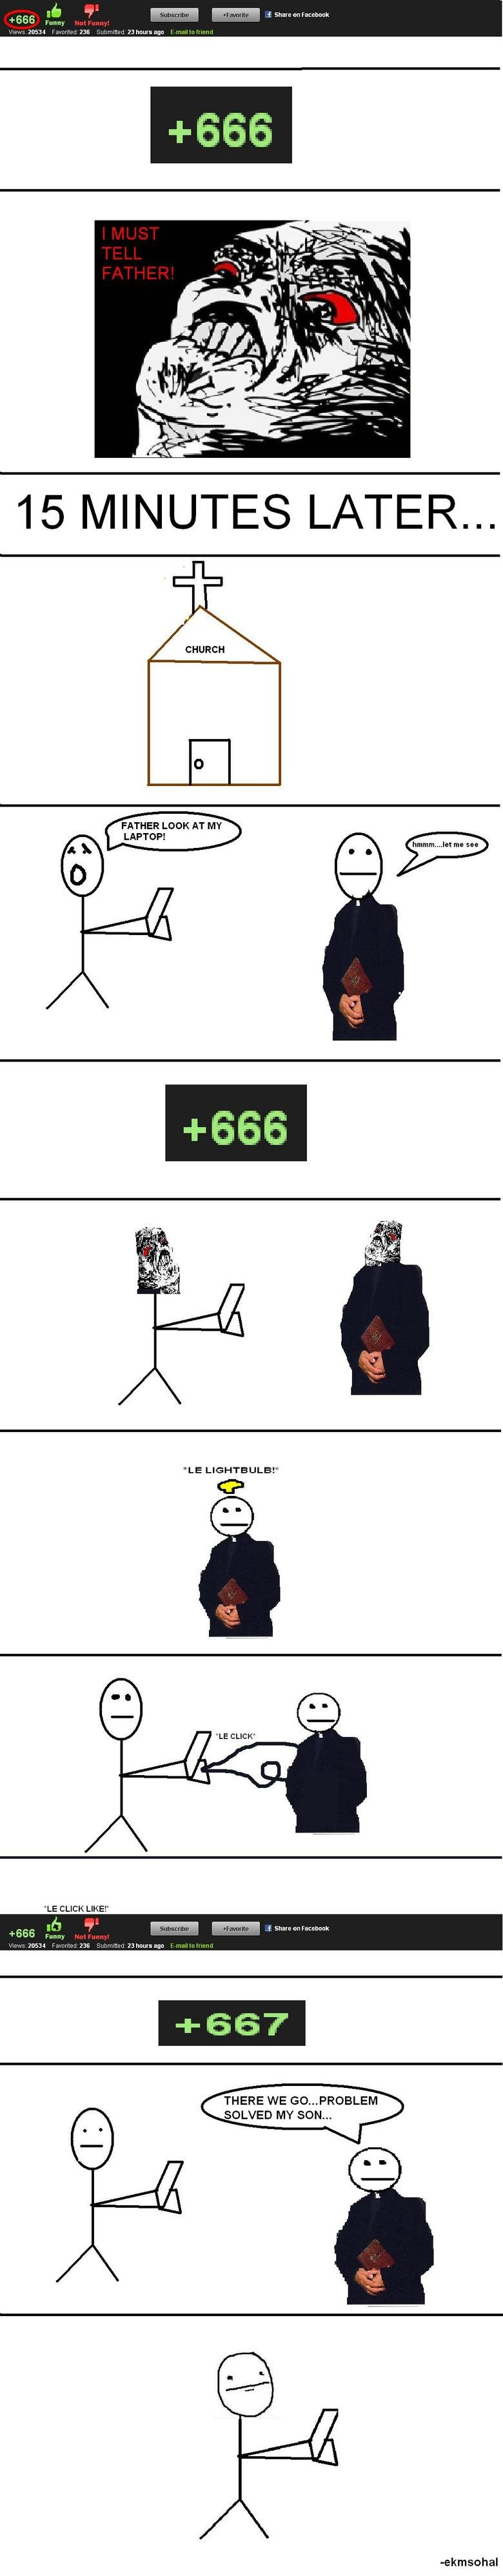 """666 DEAR GOD!. . f Share an 15 MINUTES LATER... FATHER LOOK AT MY LAPTOP! LE LIGHTBULB!"""" LE CLICK LIKE!"""" f Share an Facebuuk THERE WE ... PROBLEM SOLVED MY SON."""